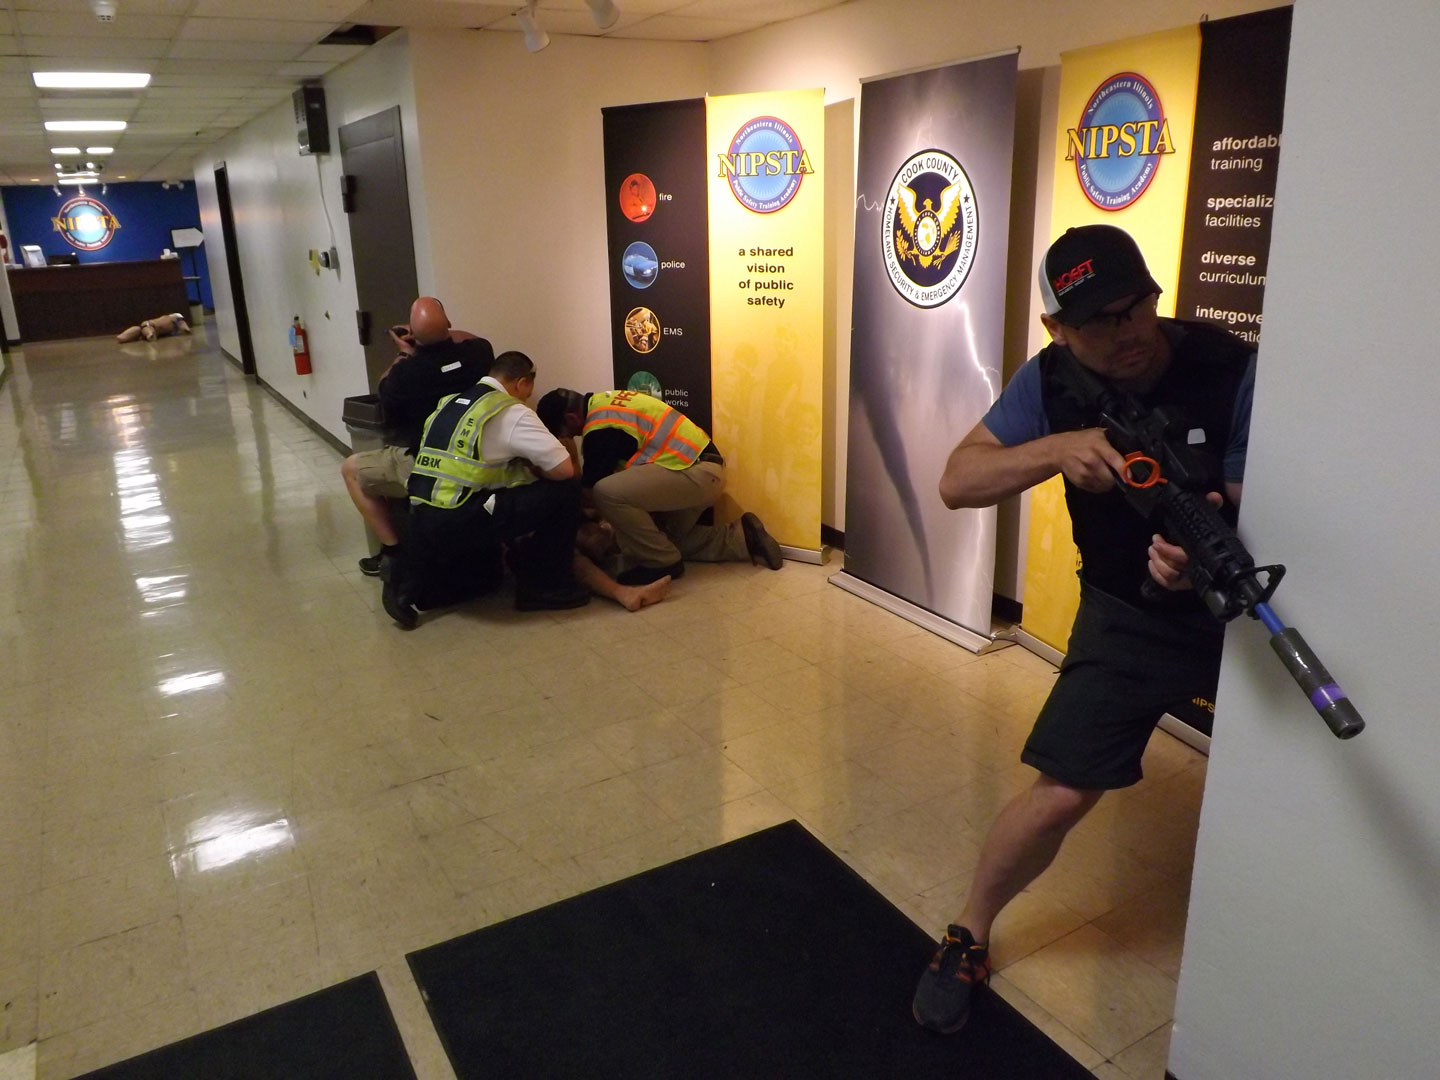 Law enforcement establishes a protected corridor for responders to assist patients.